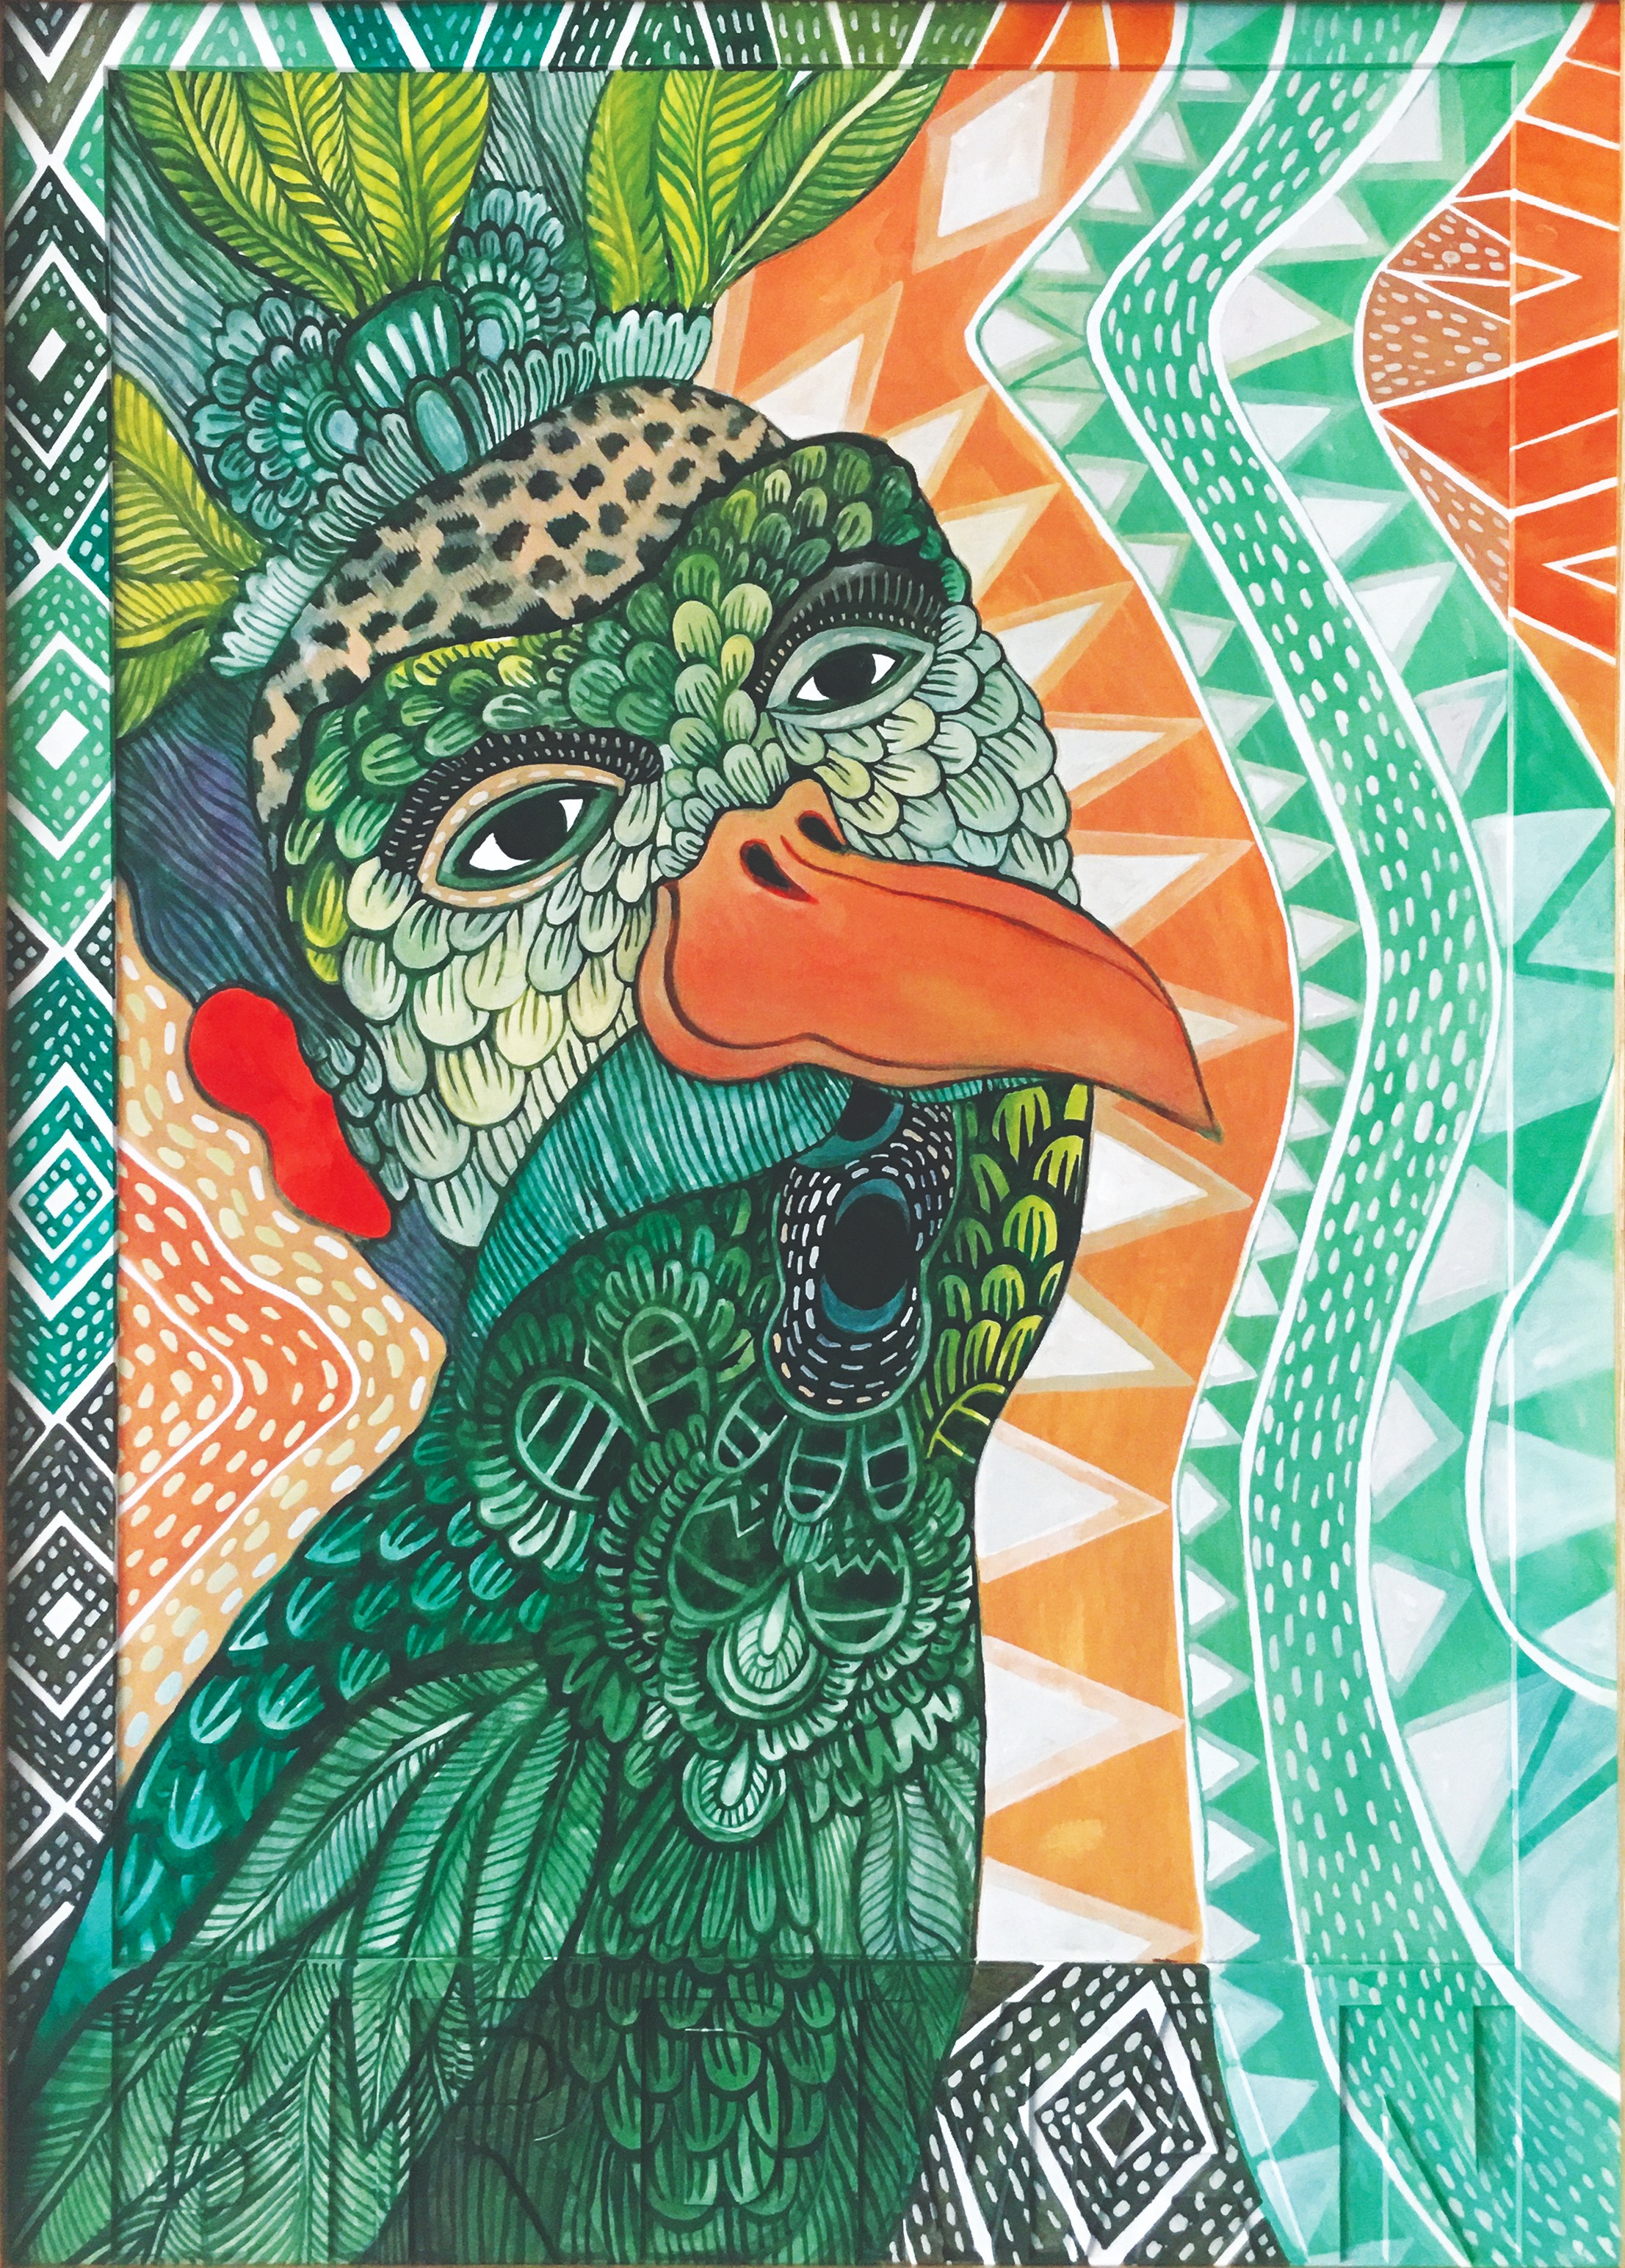 CECILIA FOGELBERG  BIRDMAN (green) , 2019 gouache and watercolour on 100% cotton rag board, framed 61 x 43 cm